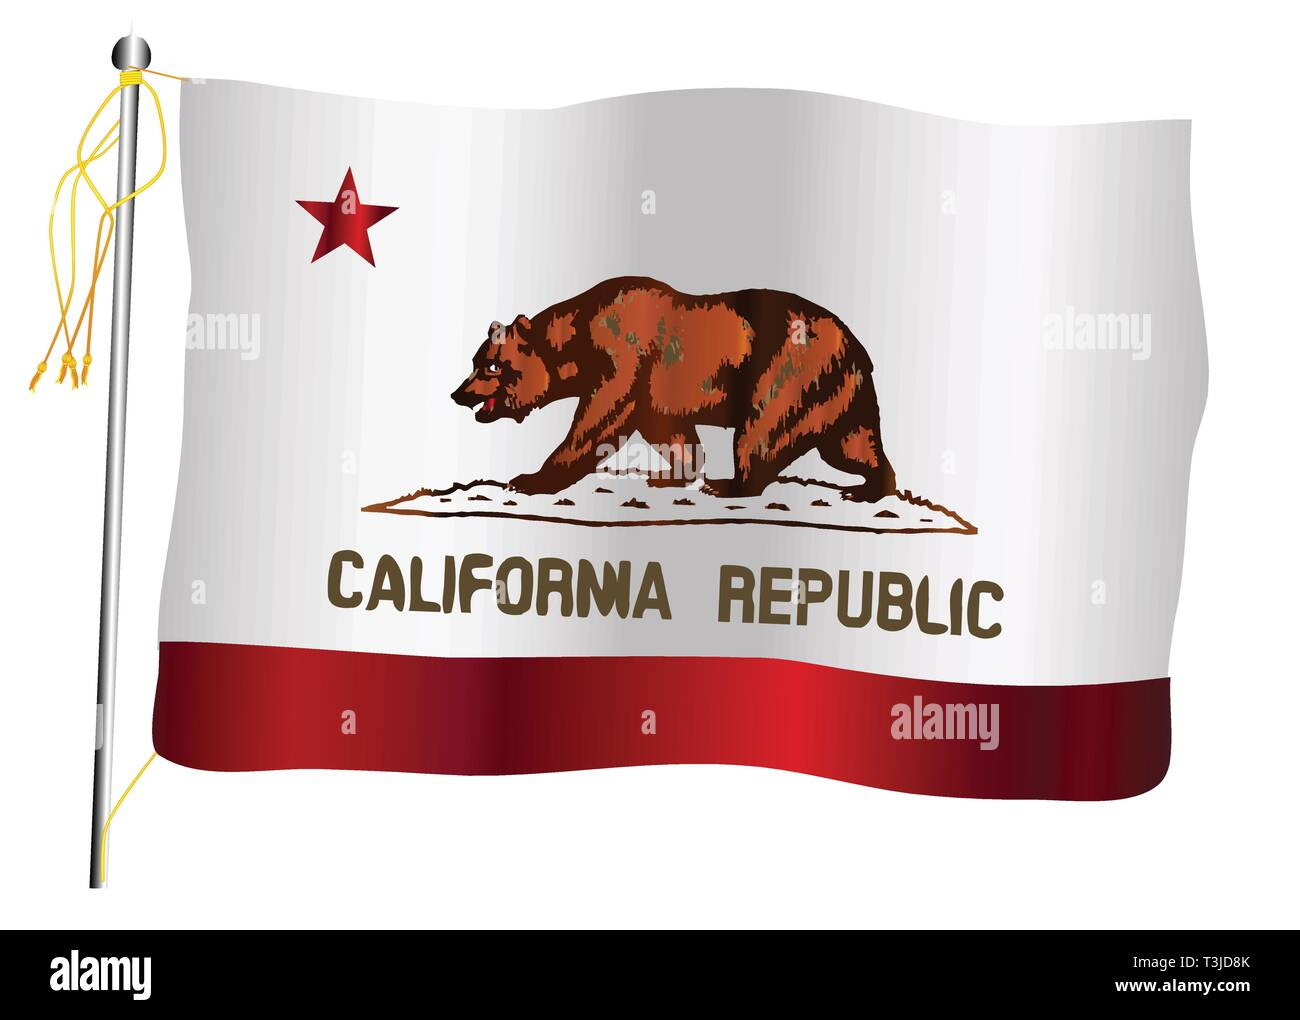 The California State US state flag set against against a white background. - Stock Vector